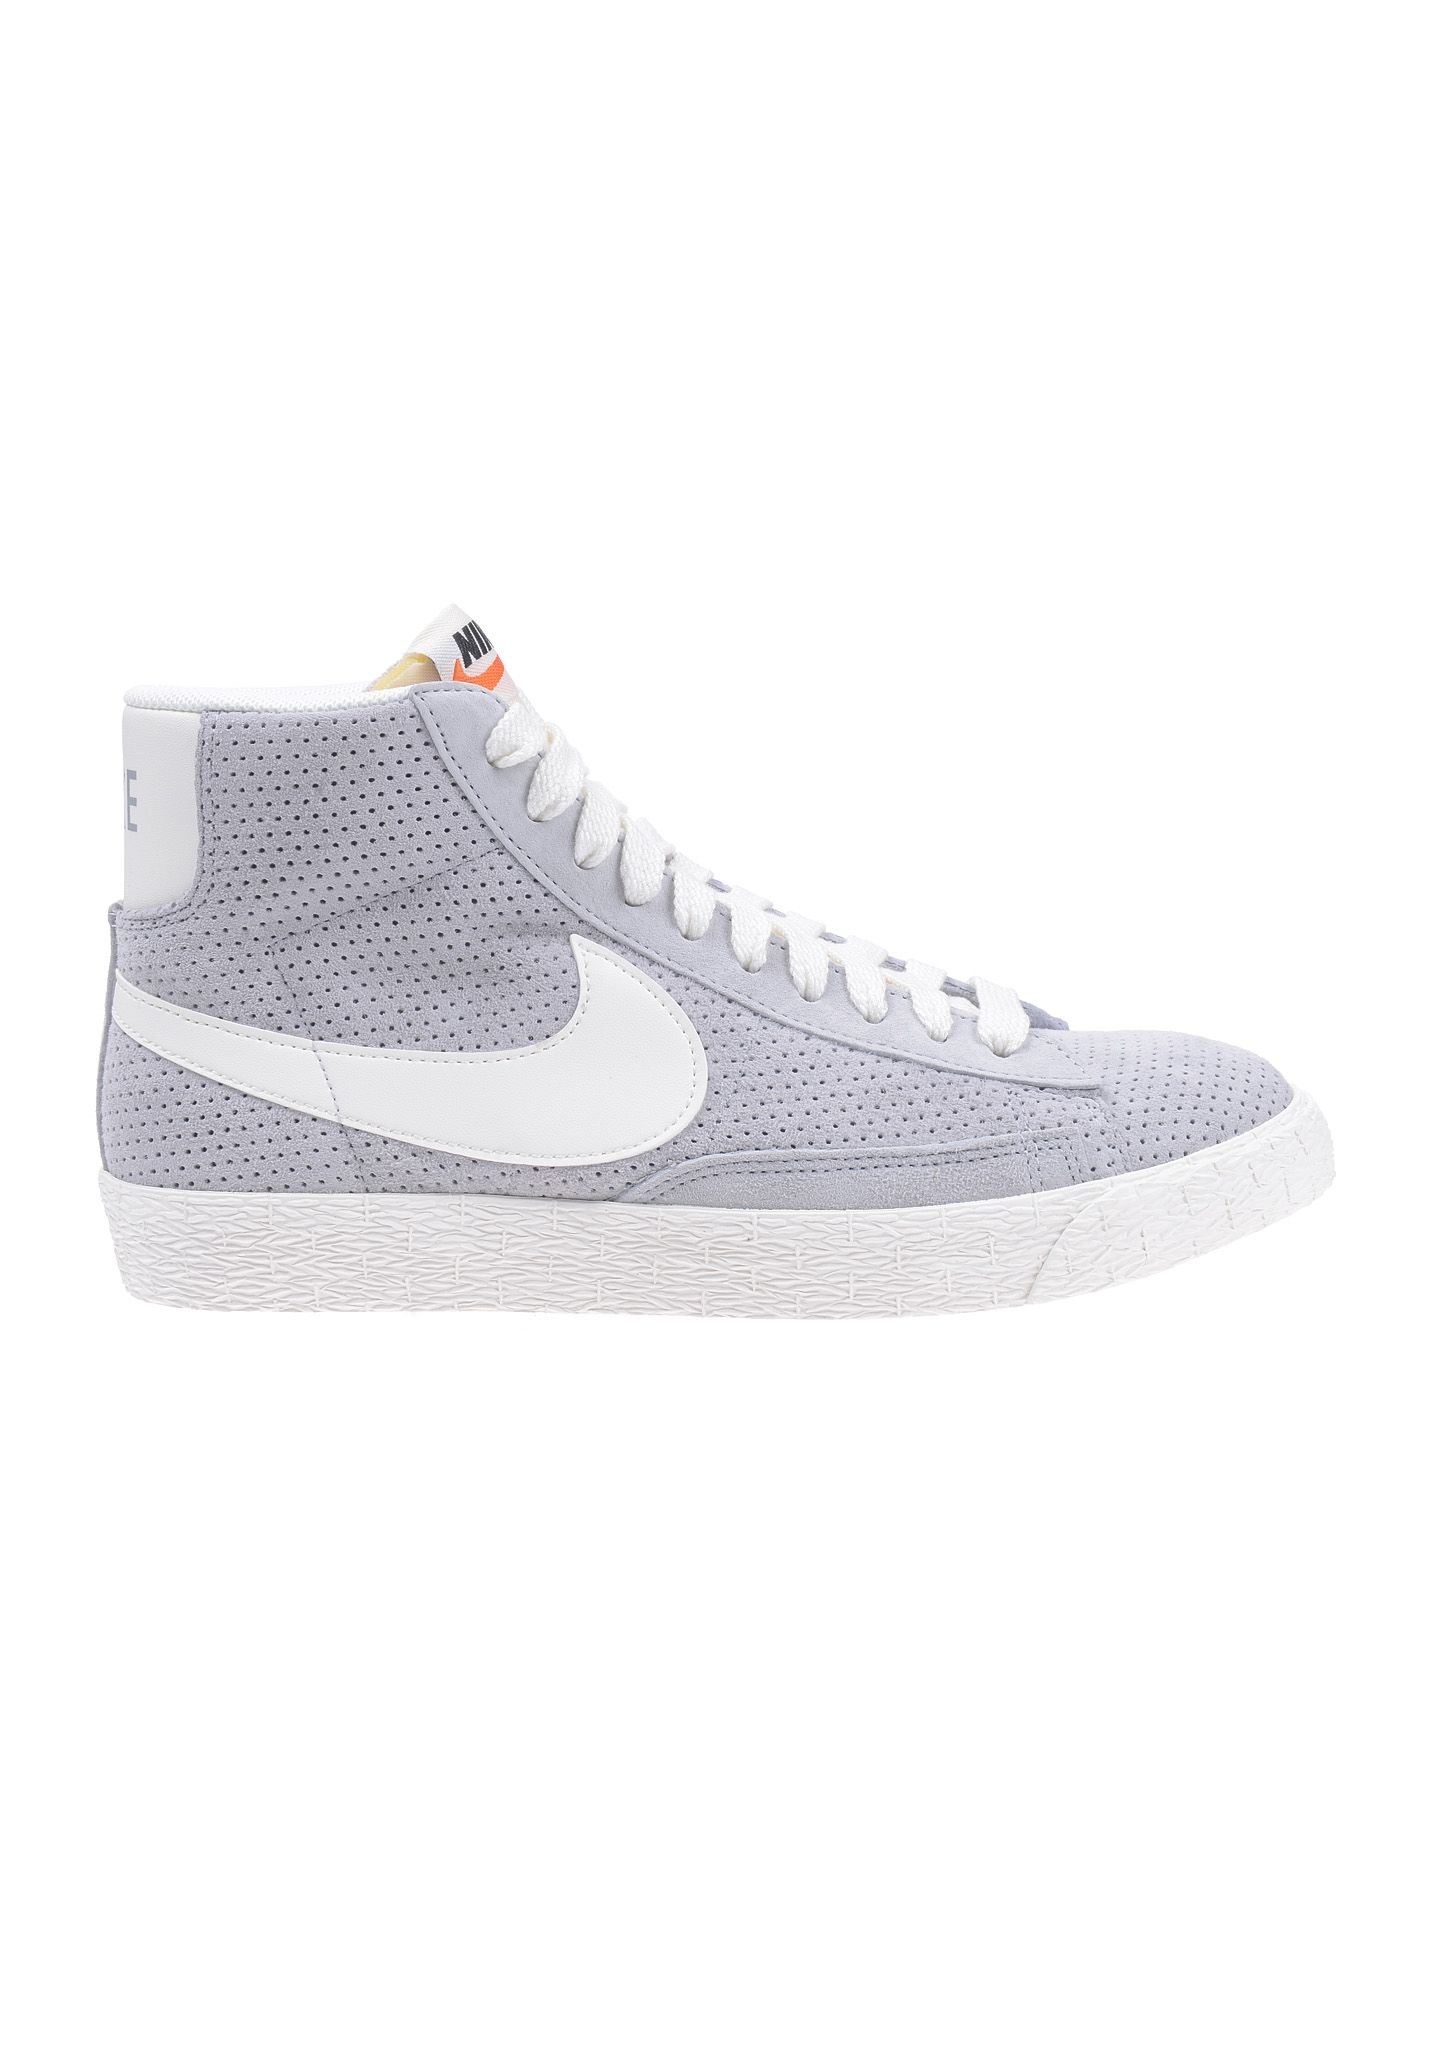 NIKE SPORTSWEAR Blazer Mid Suede Vintage - Sneakers for Women - Grey -  Planet Sports 46d1c94dd3